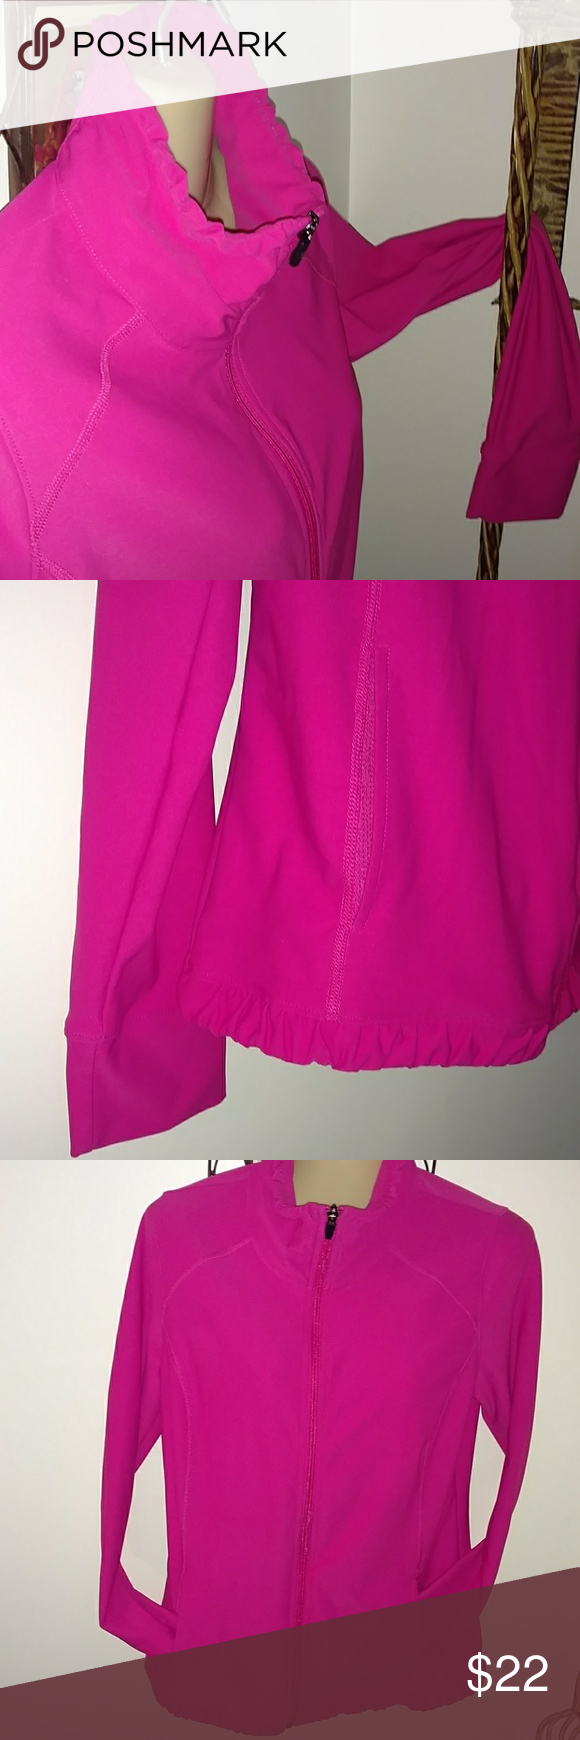 Pink dress with pink jacket  Hot pink zip up feminine style jacket  Feminine style Hot pink and